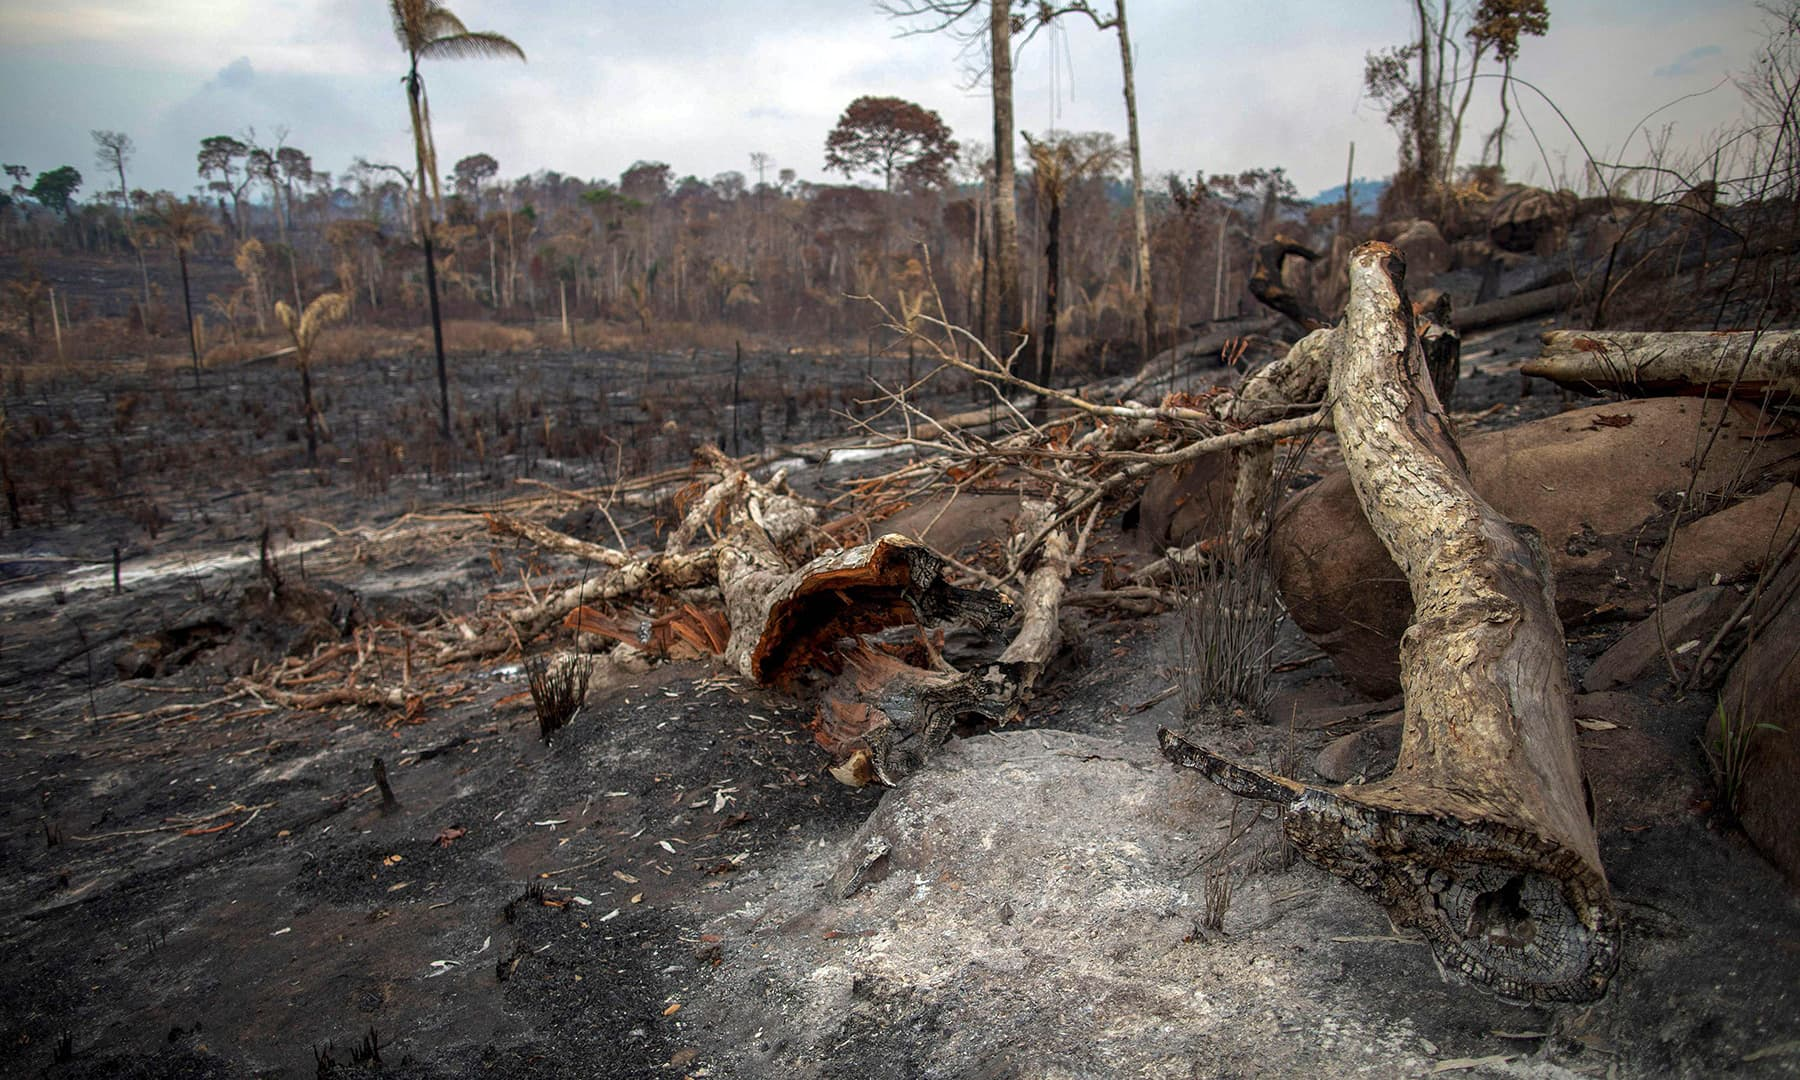 View of a burnt area after a fire in the Amazon rainforest near Novo Progresso, Para state, Brazil, on Sunday. — AFP